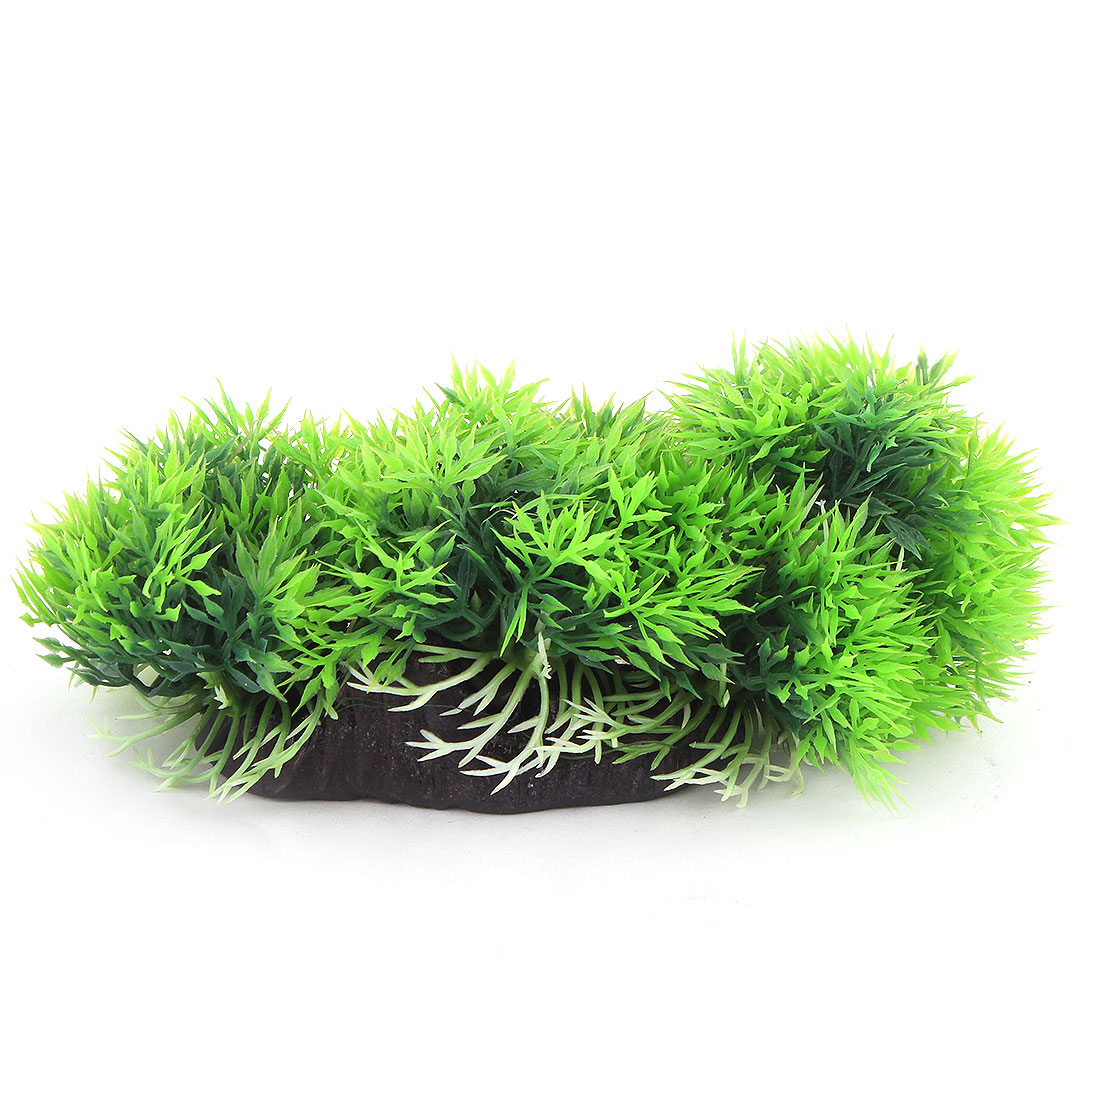 Aquarium Fish Tank Plastic Simulation Water Plants Decoration Green